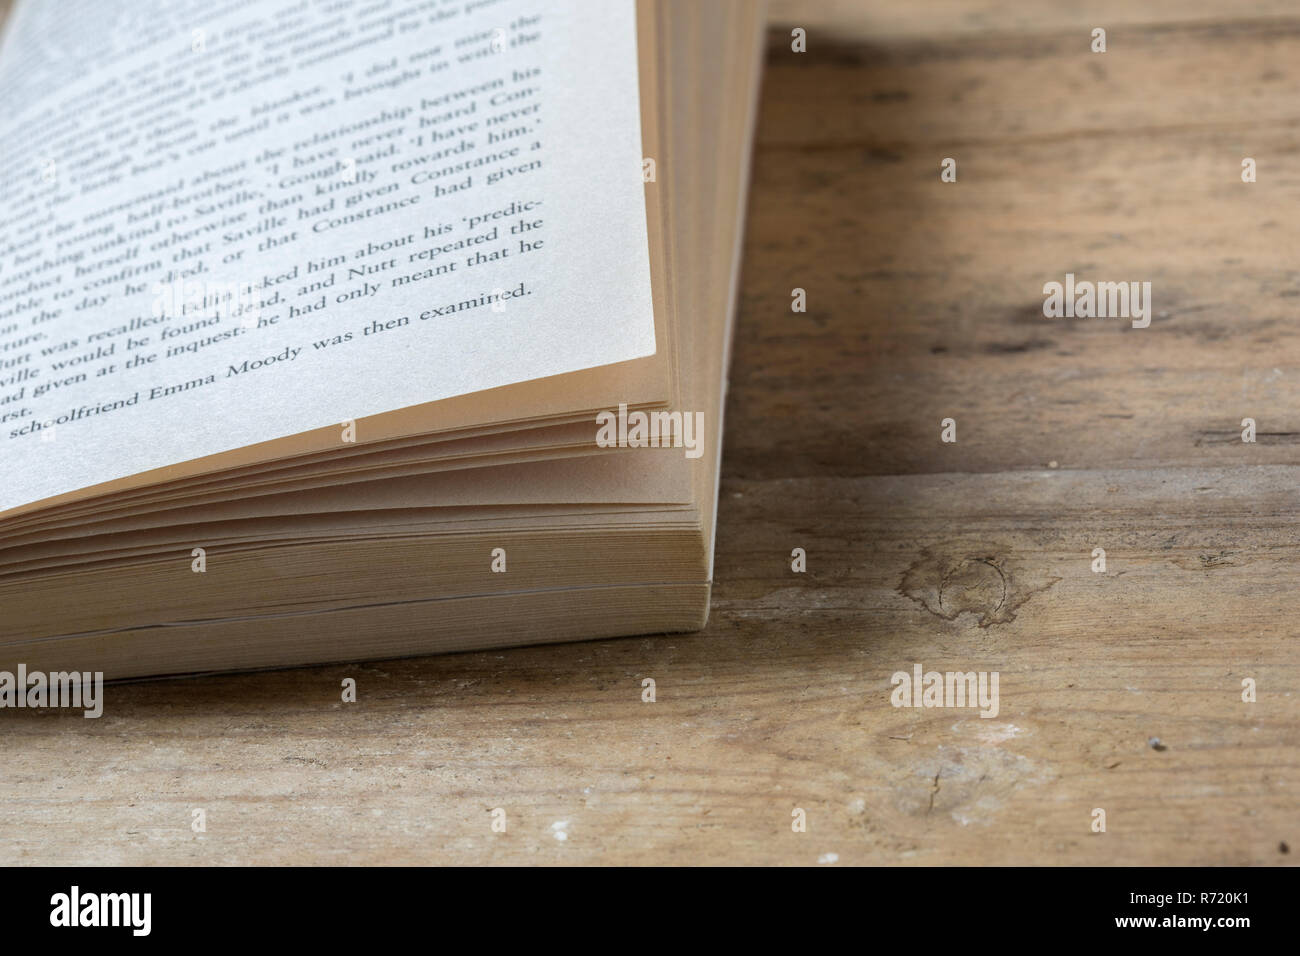 An old paperback book - Stock Image